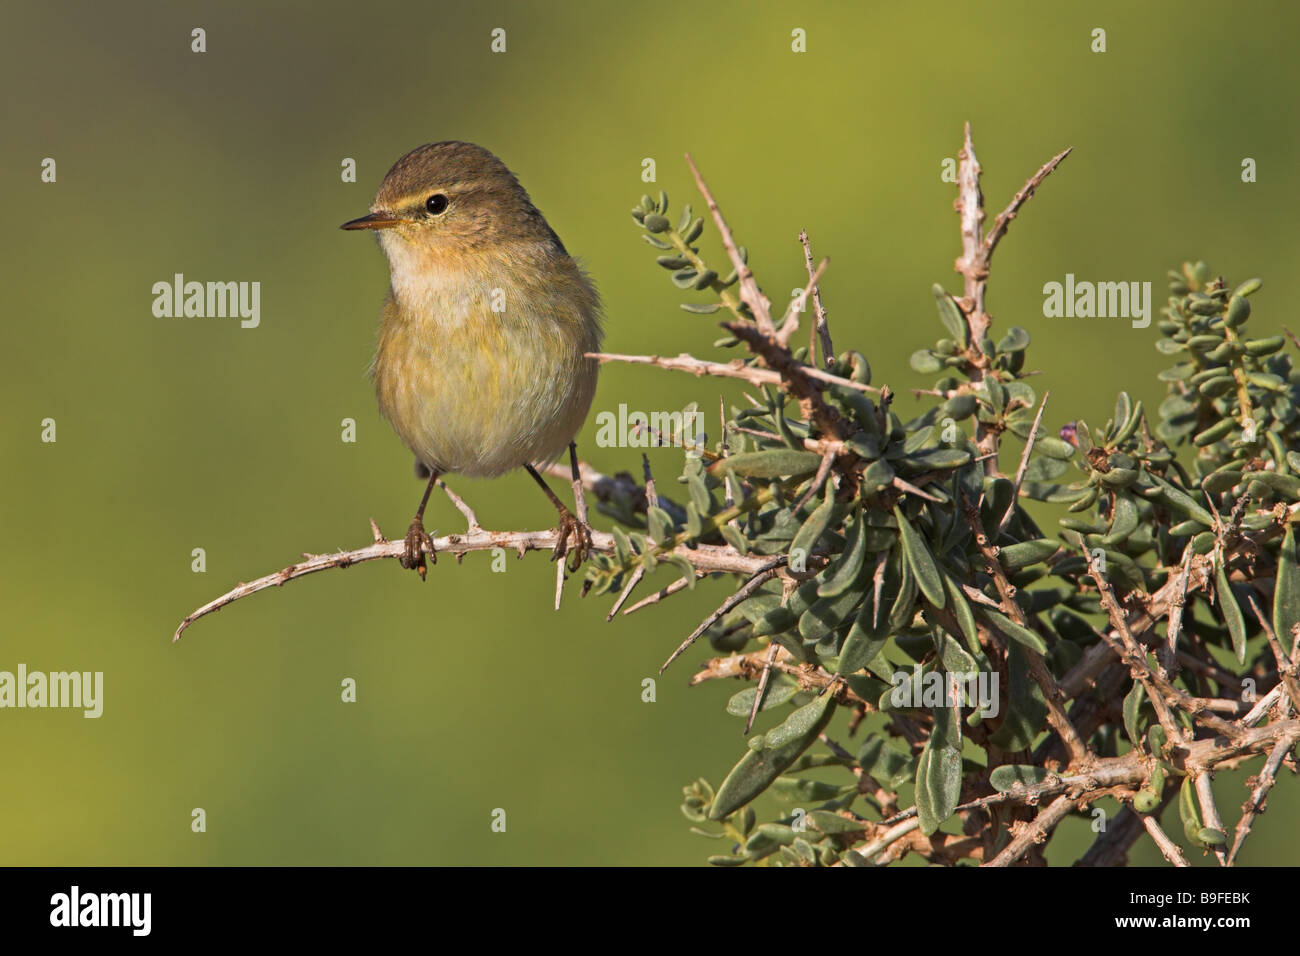 Close-up of bird perching on twig - Stock Image